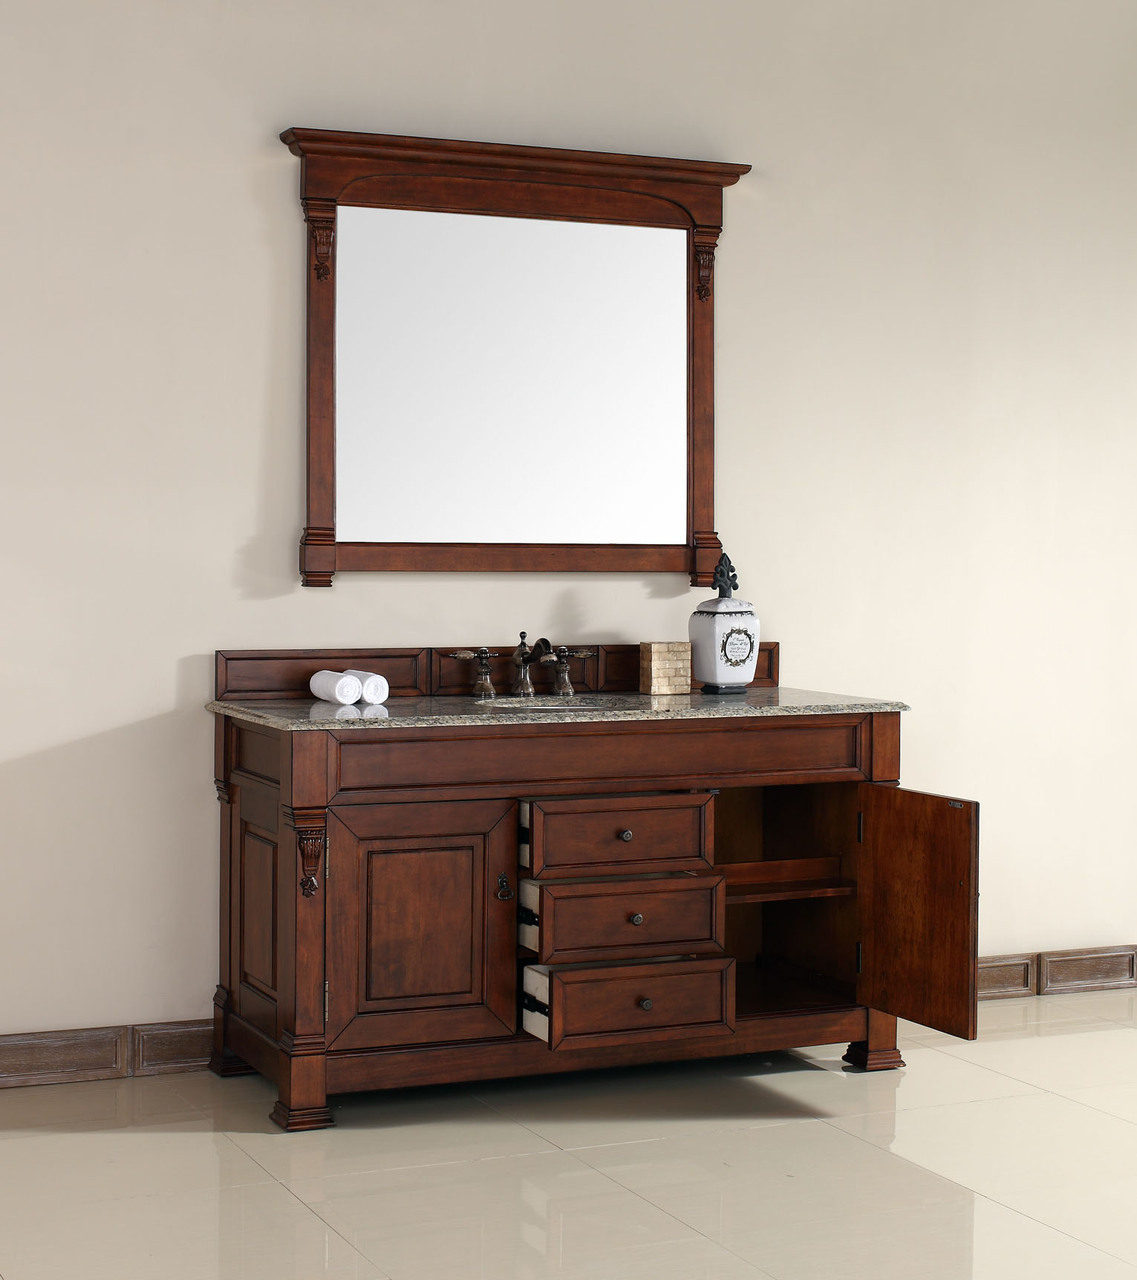 James martin brookfield collection 60 single vanity warm for 60 inch single sink bathroom vanity cabinets